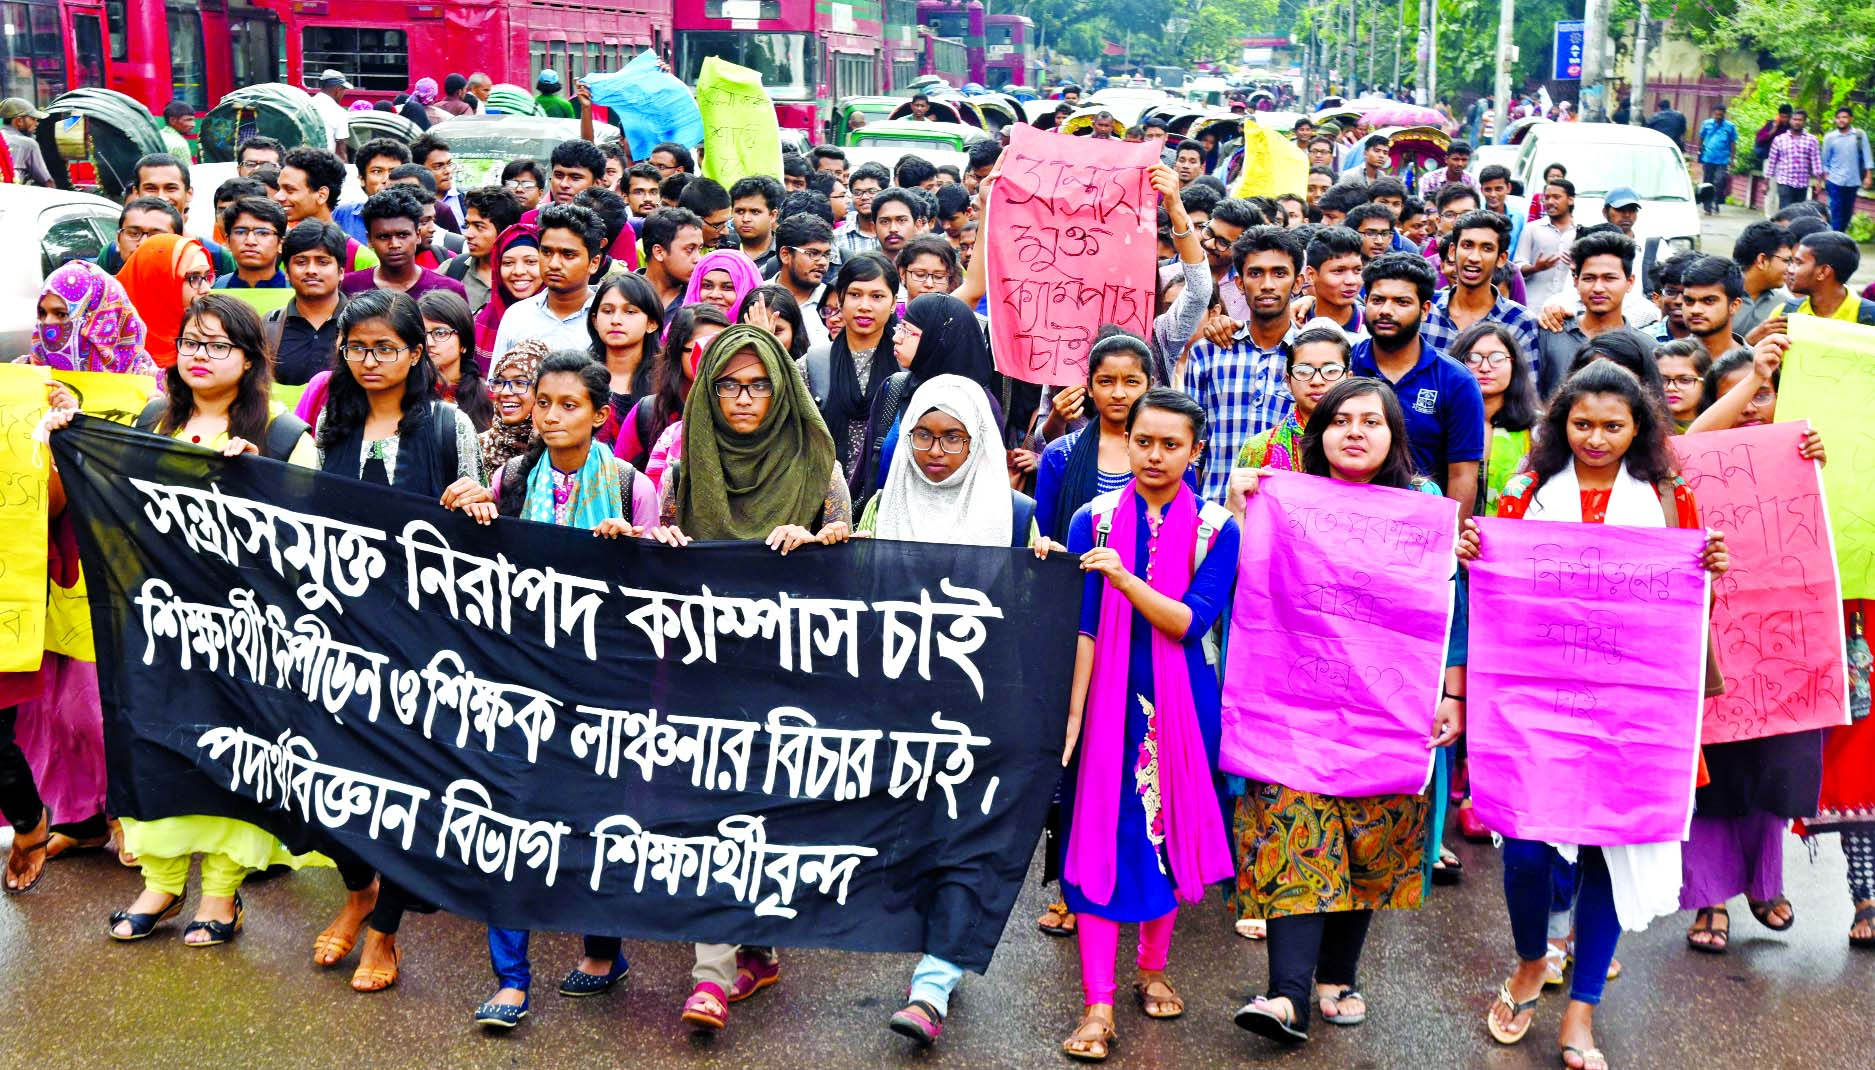 Students of Physics Department of Dhaka University brought out a procession in front of the DU playground on Tuesday protesting attack on teachers and students and demanding safe campus.